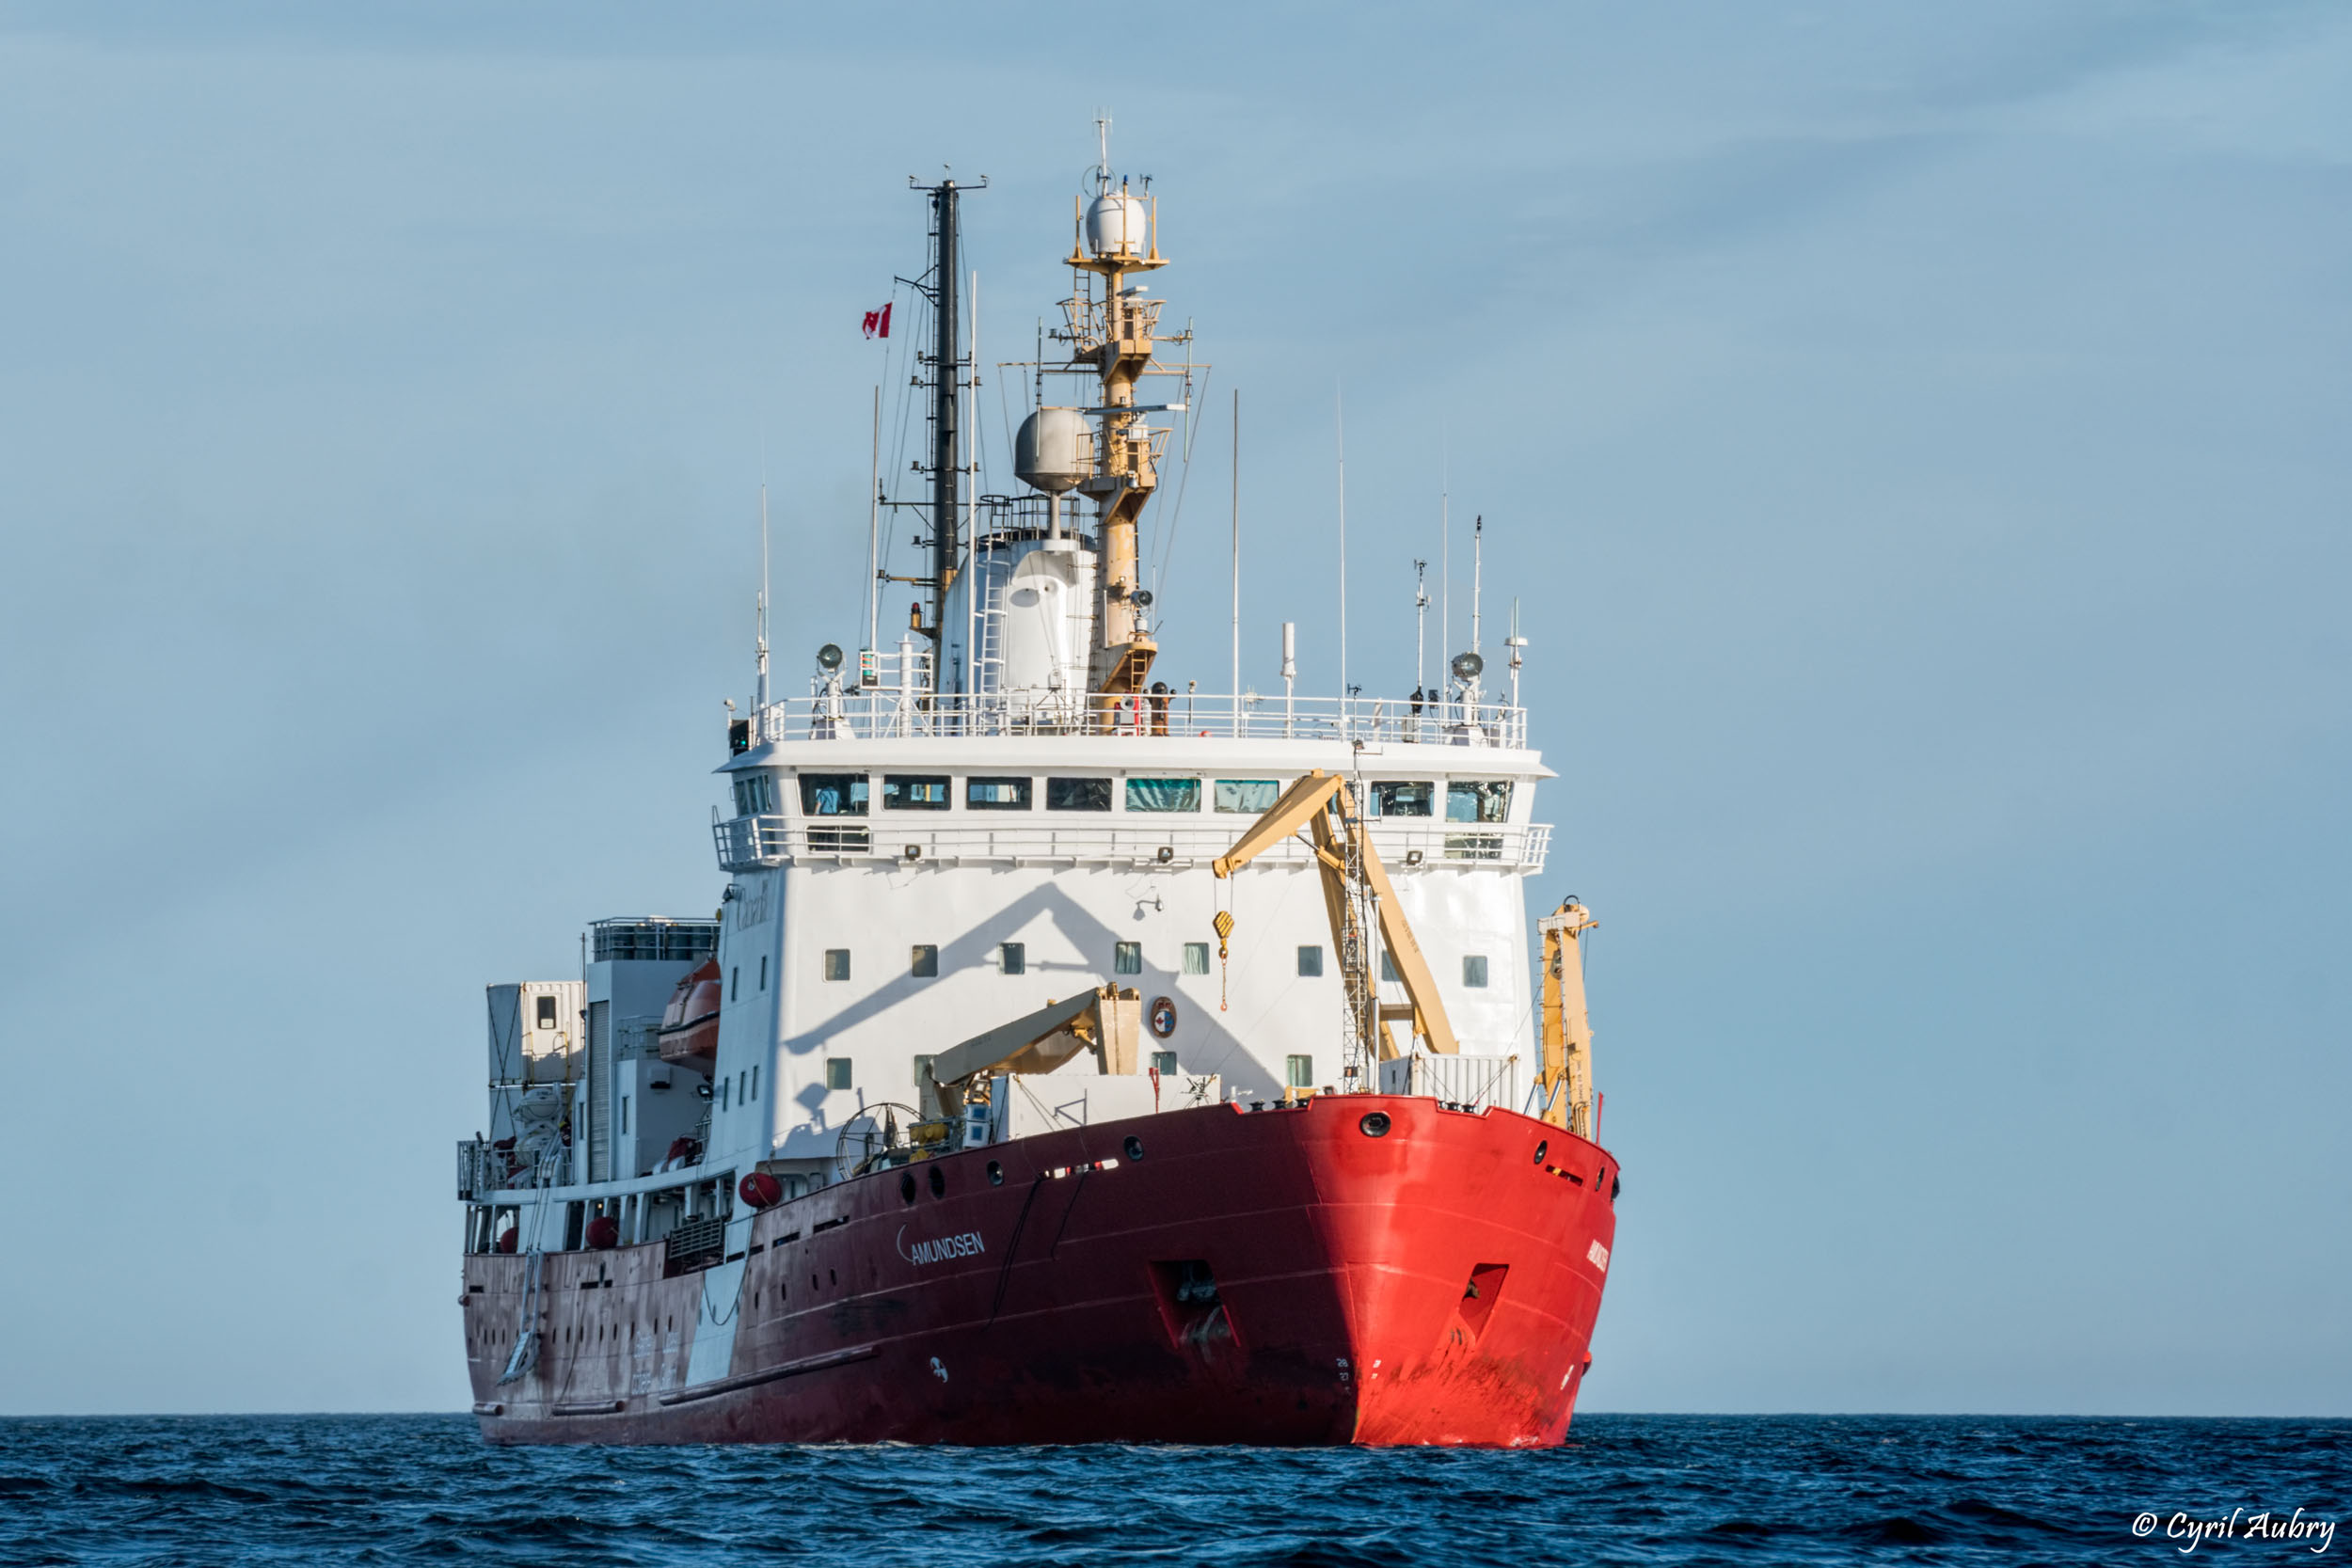 Launch of the 16th Science Expedition on board the CCGS Amundsen